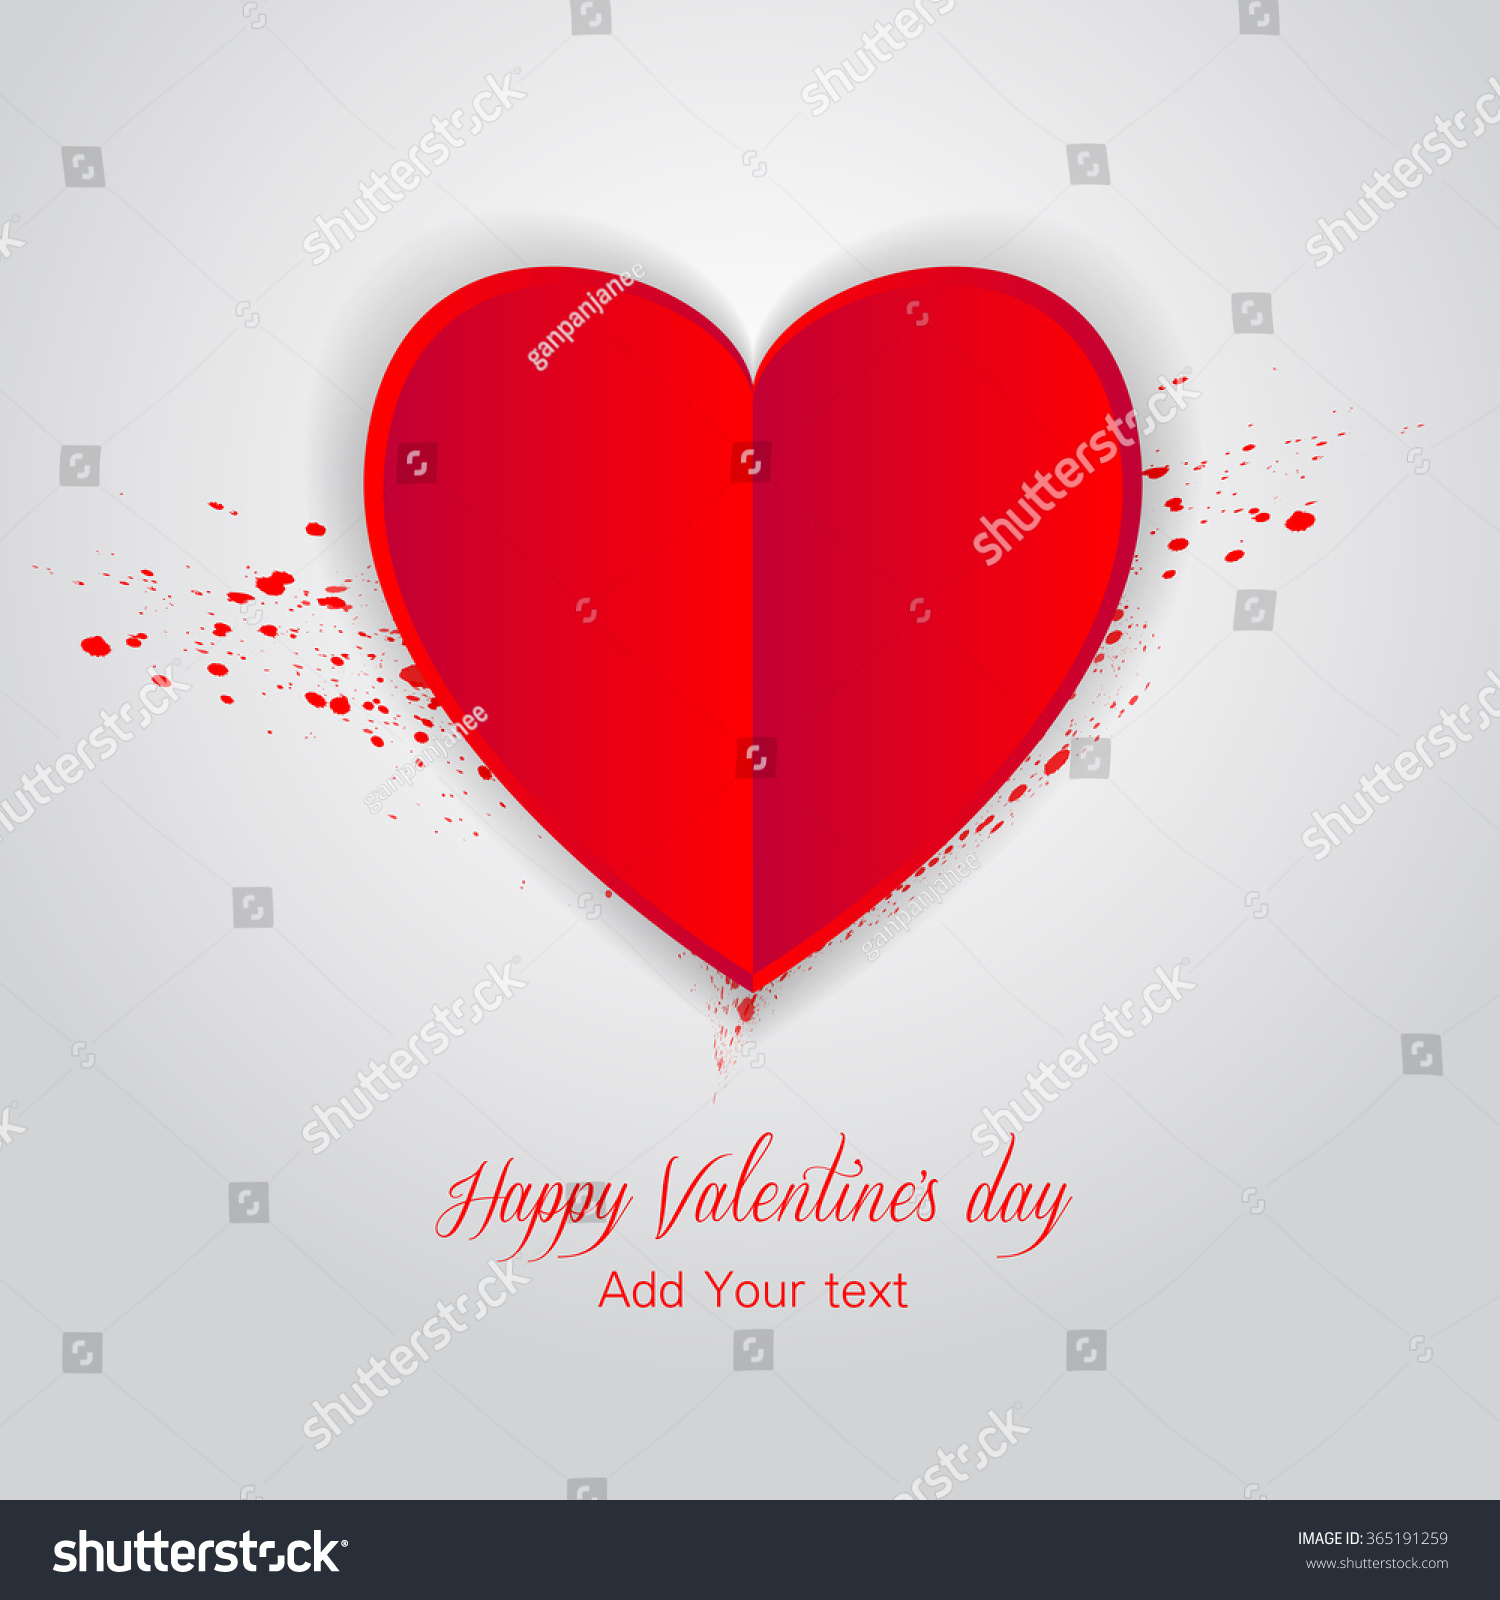 Valentines Day Card Template Greeting Card Stock Vector HD (Royalty ...